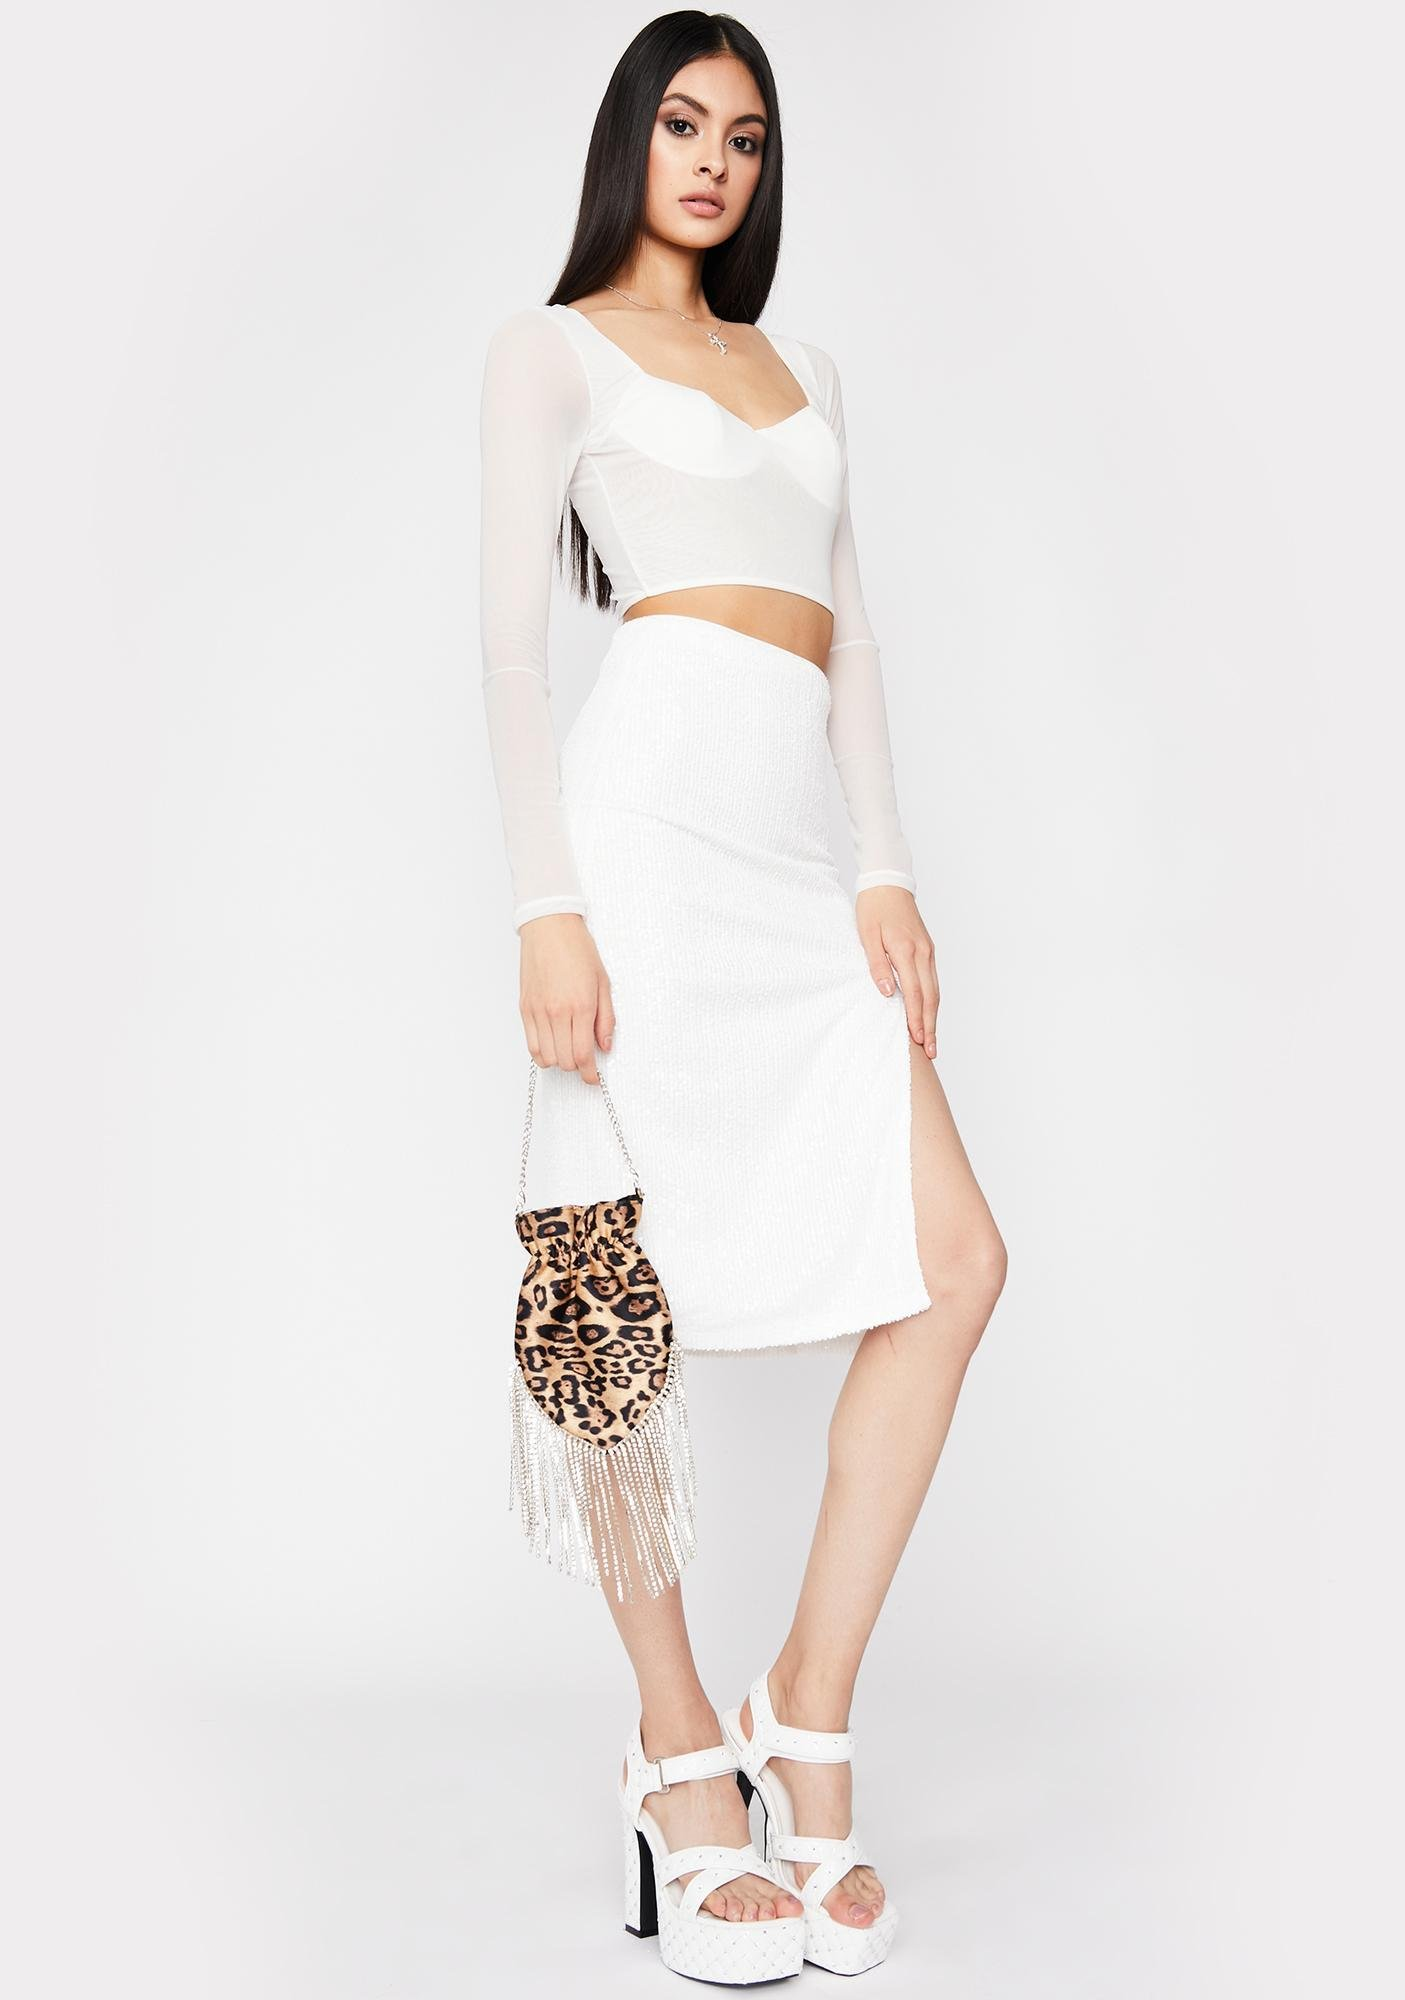 Iconic VIP Entrance Sequin Skirt